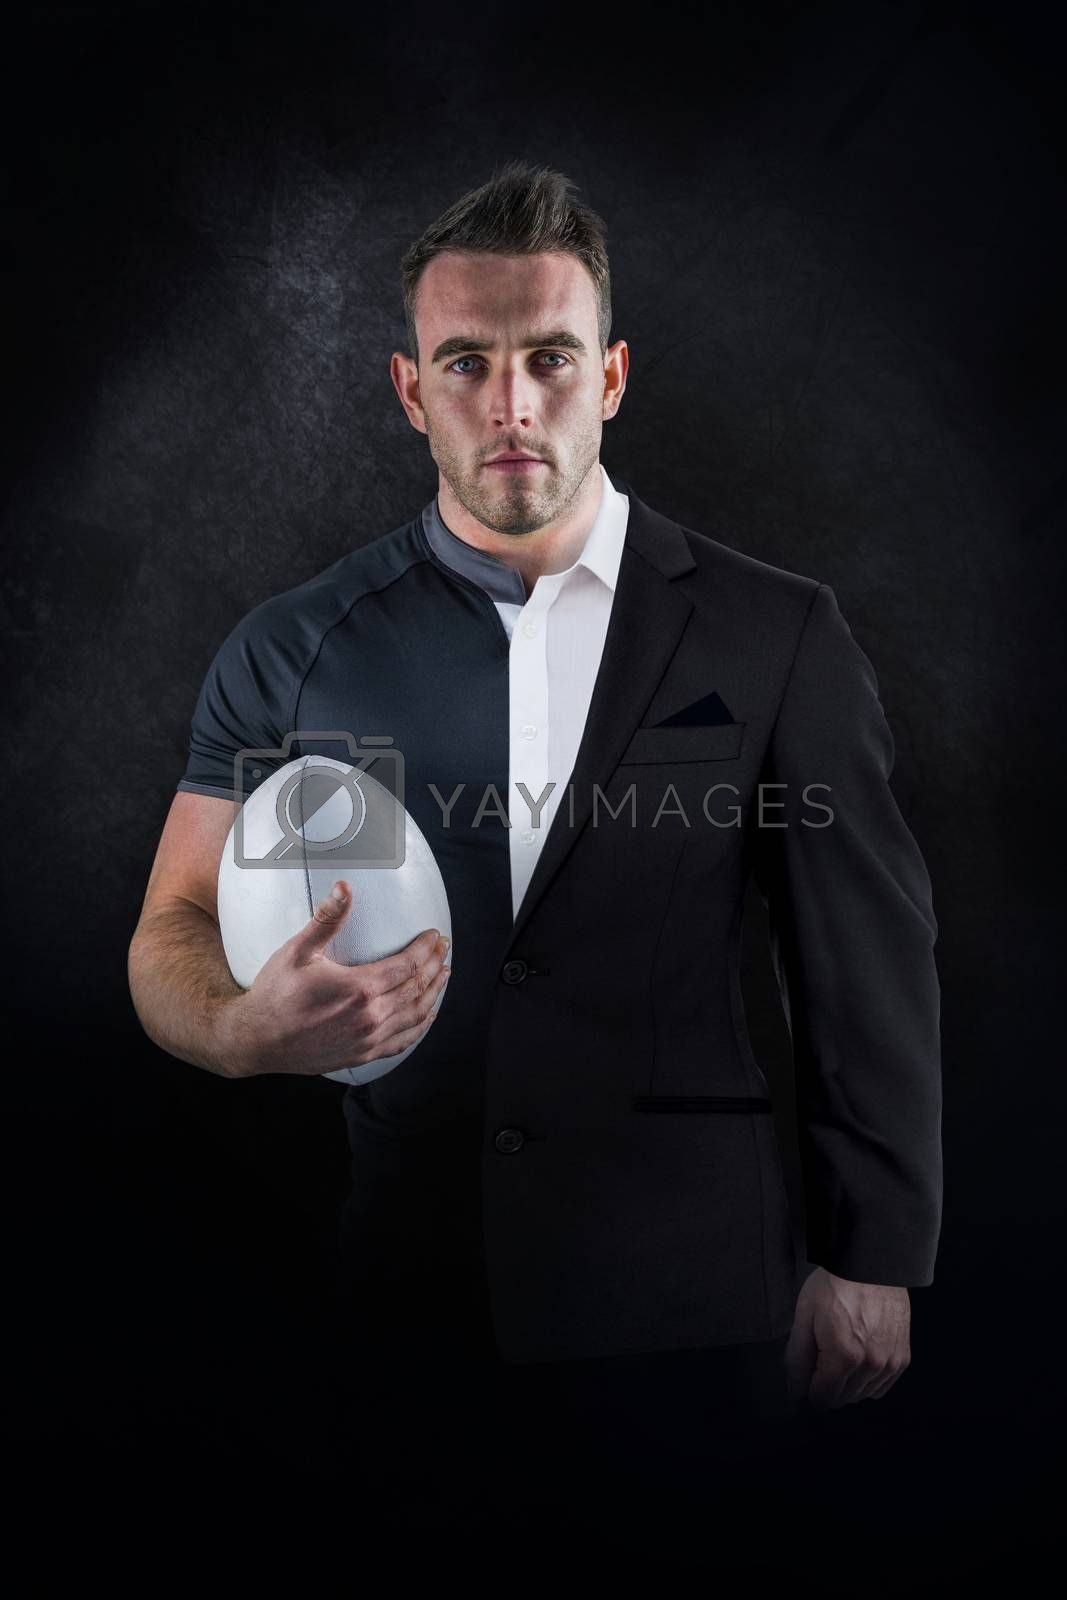 Tough rugby player holding ball against half a suit